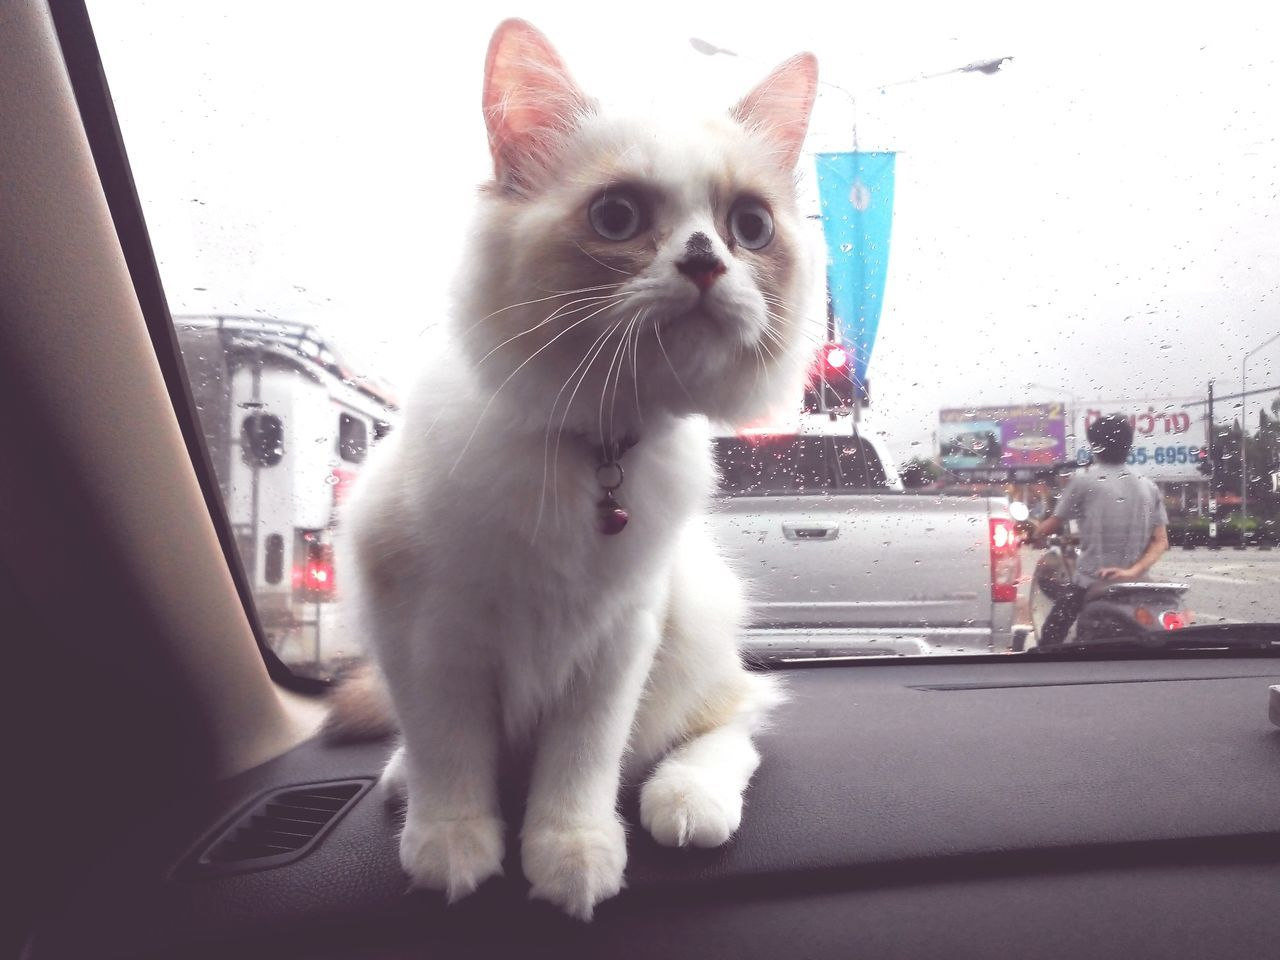 Cats Catoftheday Cat In Car Cats 🐱 Cat Watching Rainy Days